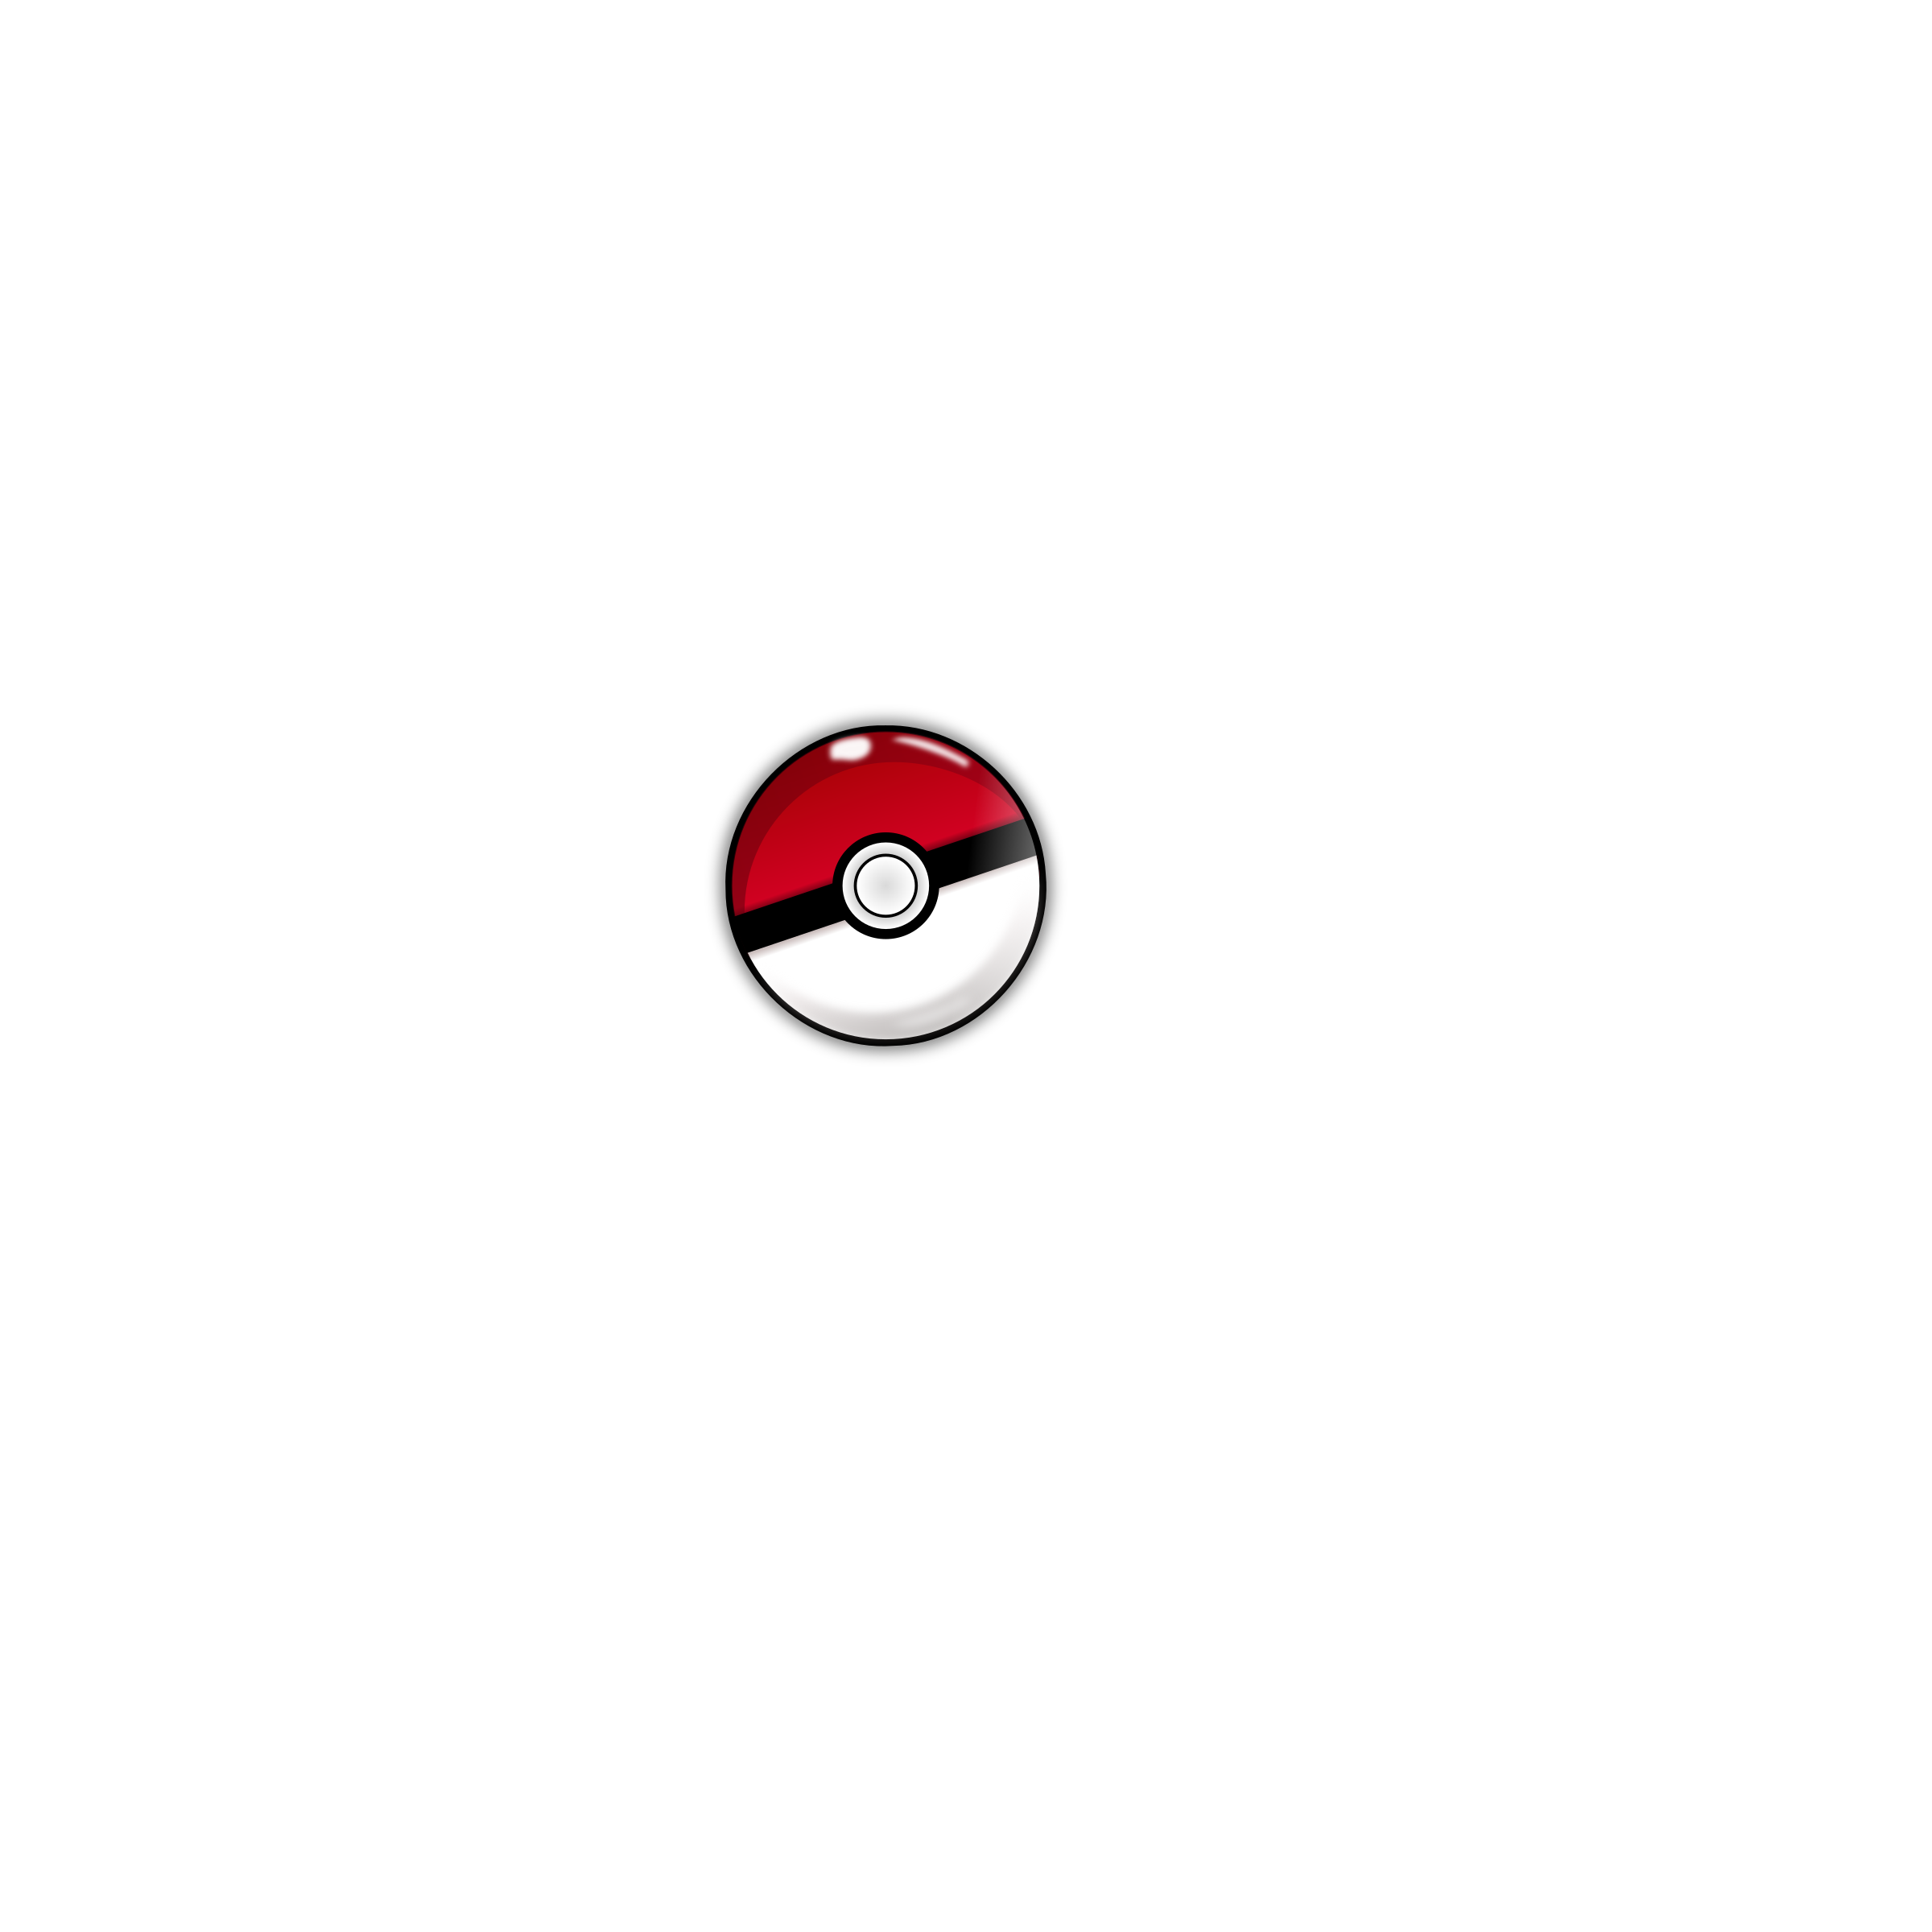 Pokeball clipart. Icon big image png